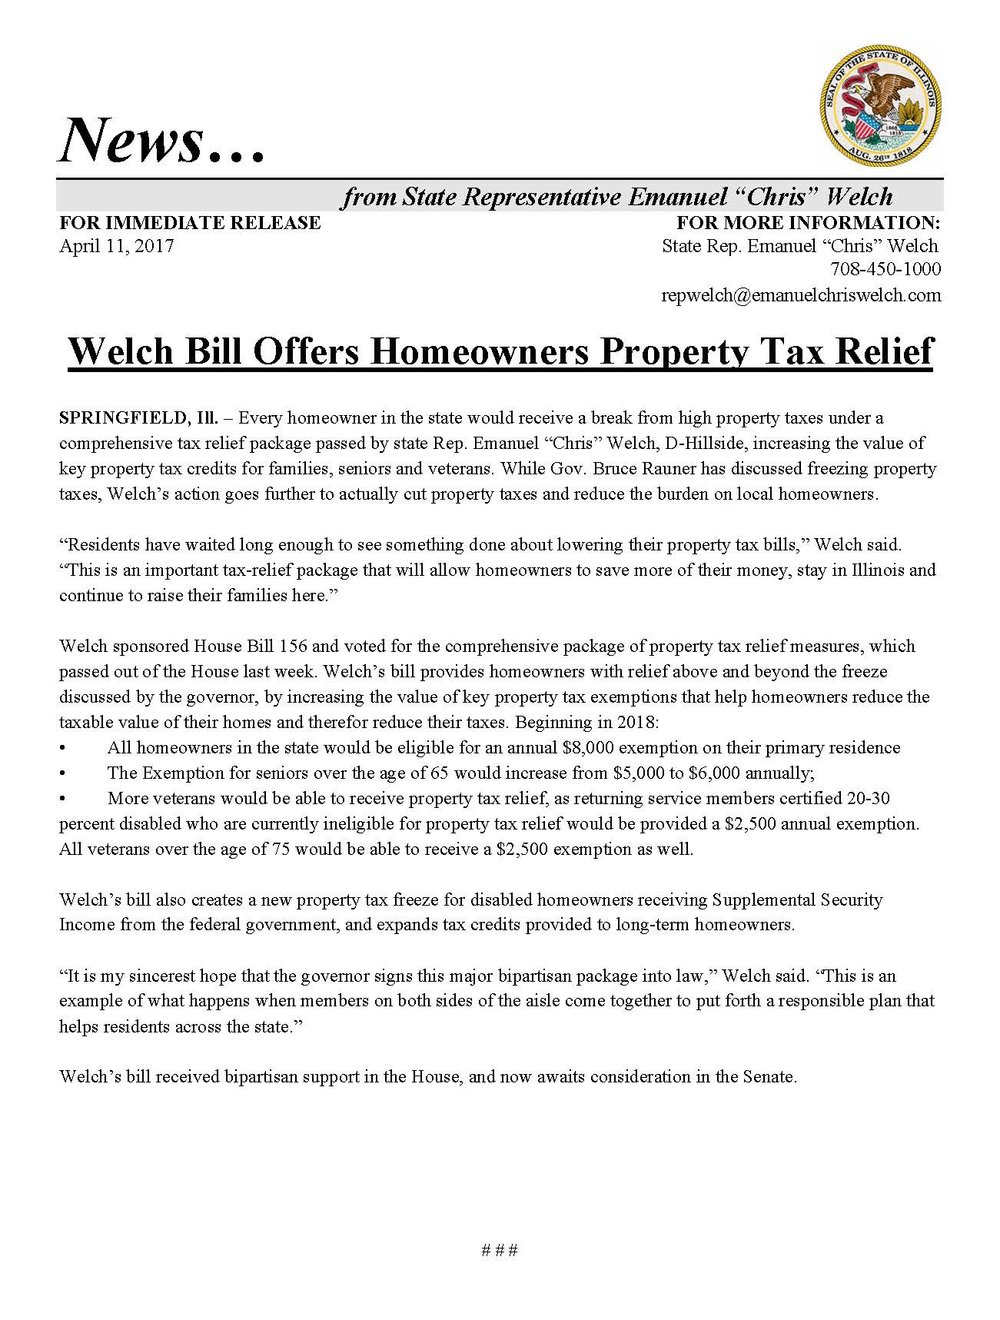 Welch Bill Offers Homeowners Property Tax Relief  (April 11, 2017)